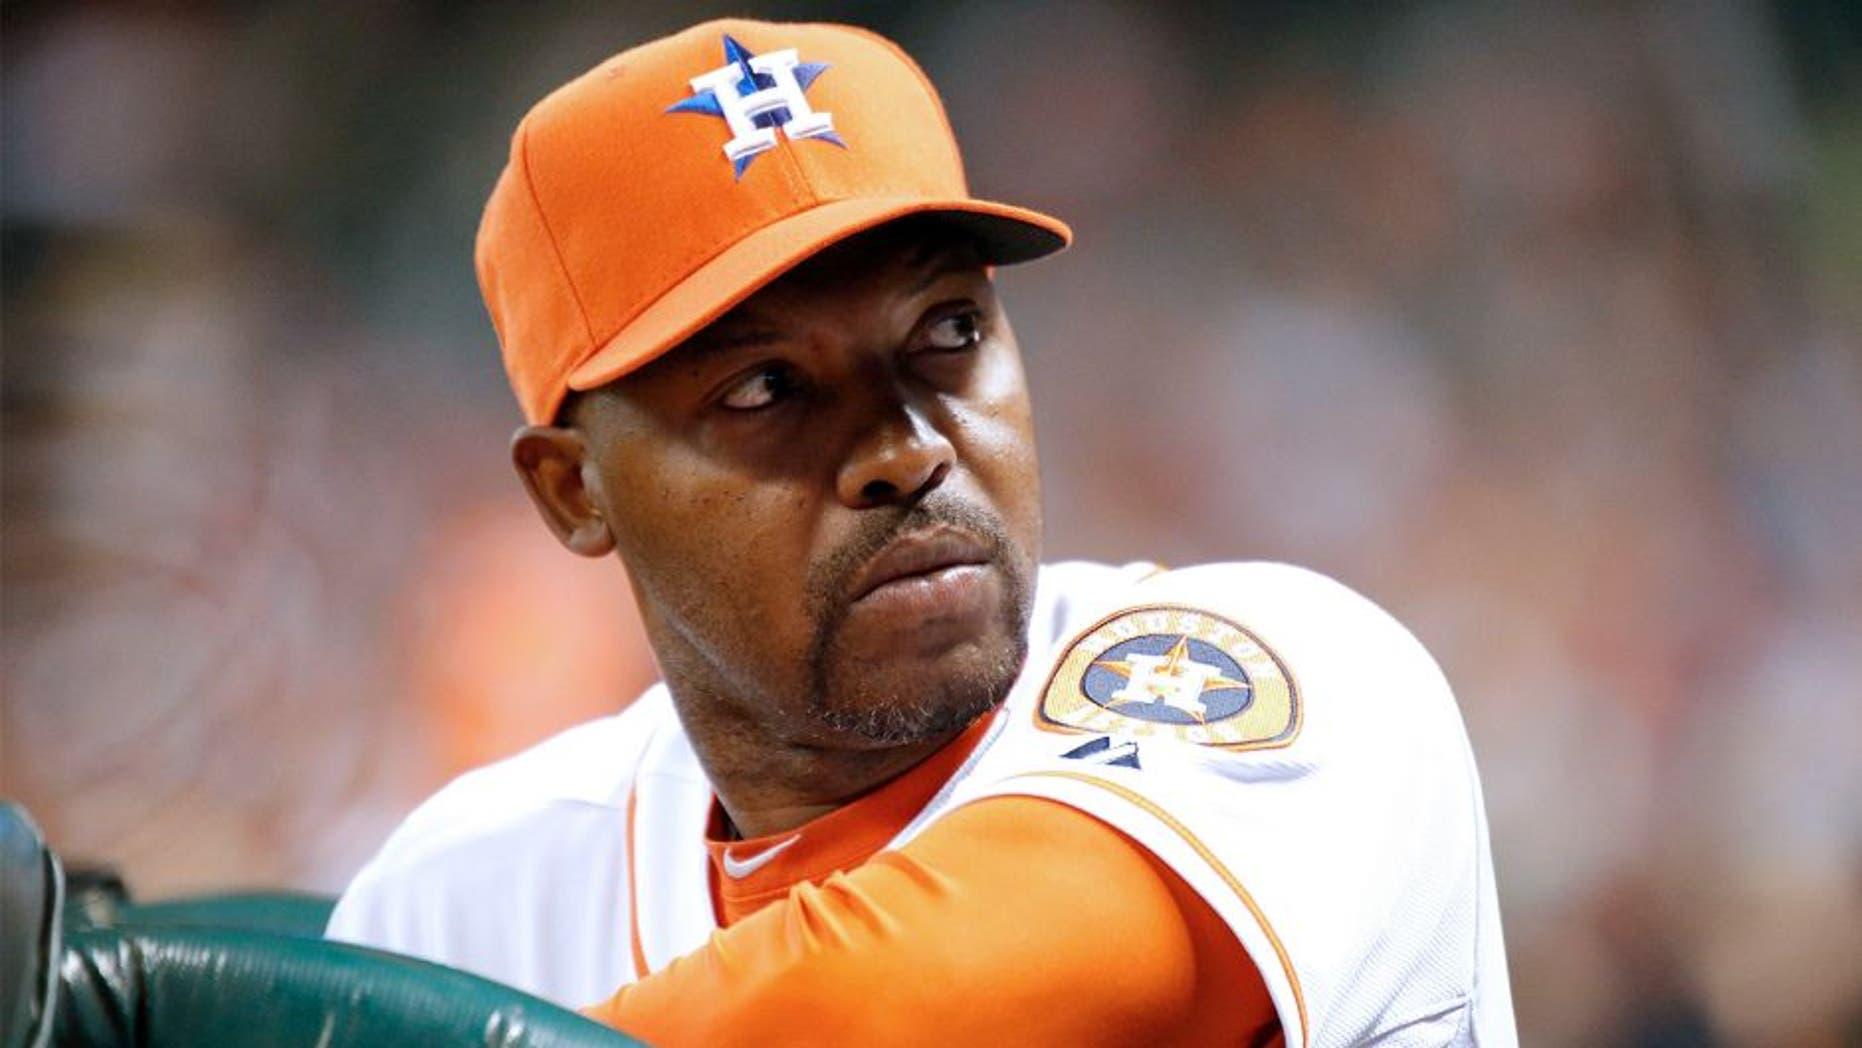 Apr 5, 2014; Houston, TX, USA; Houston Astros manager Bo Porter (16) looks at the crowd during the first inning against the Los Angeles Angels at Minute Maid Park. Mandatory Credit: Andrew Richardson-USA TODAY Sports